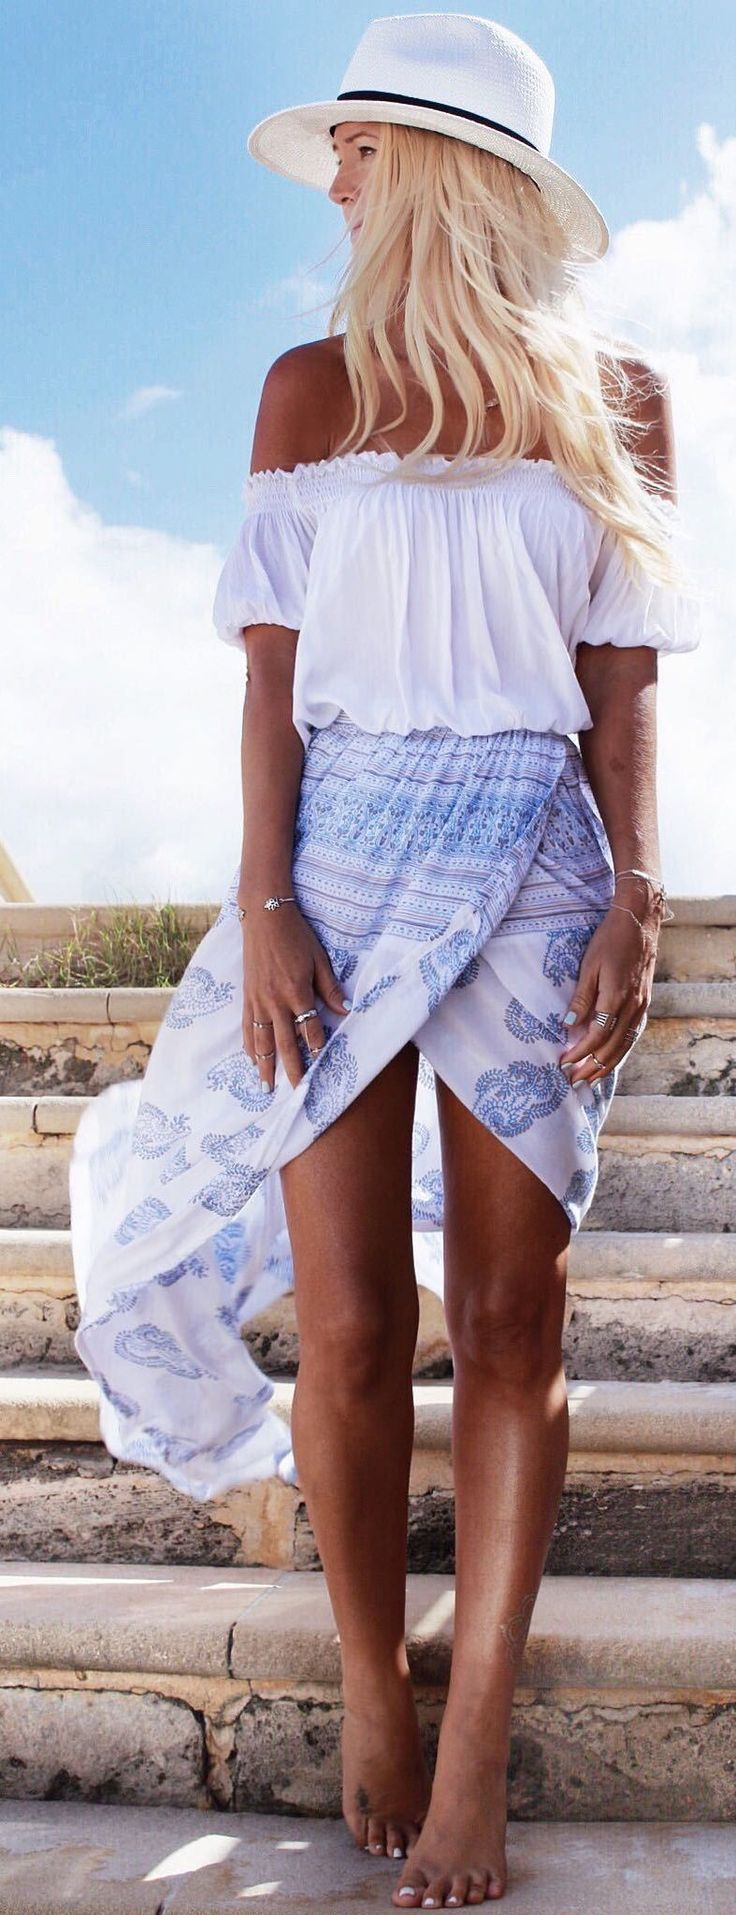 Outfit Idea. Beach style - chiffon maxi skirt, white top and straw hat. Latest summer look ideas 2015.